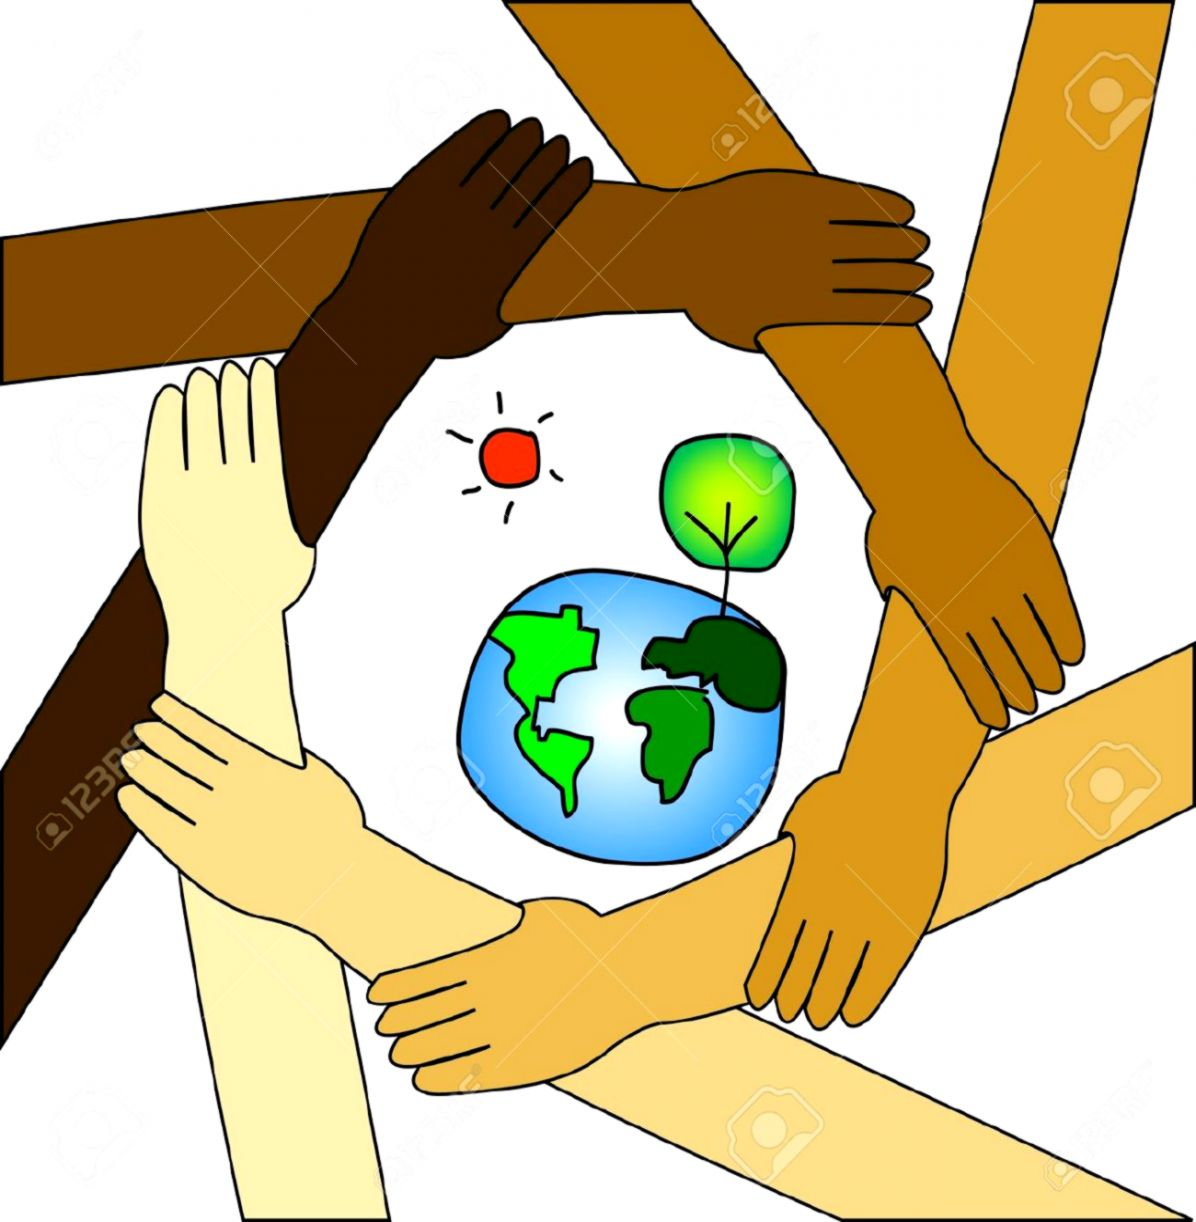 Save the world free clipart clip art freeuse stock Save The World Peace | All HD Wallpapers Gallery clip art freeuse stock